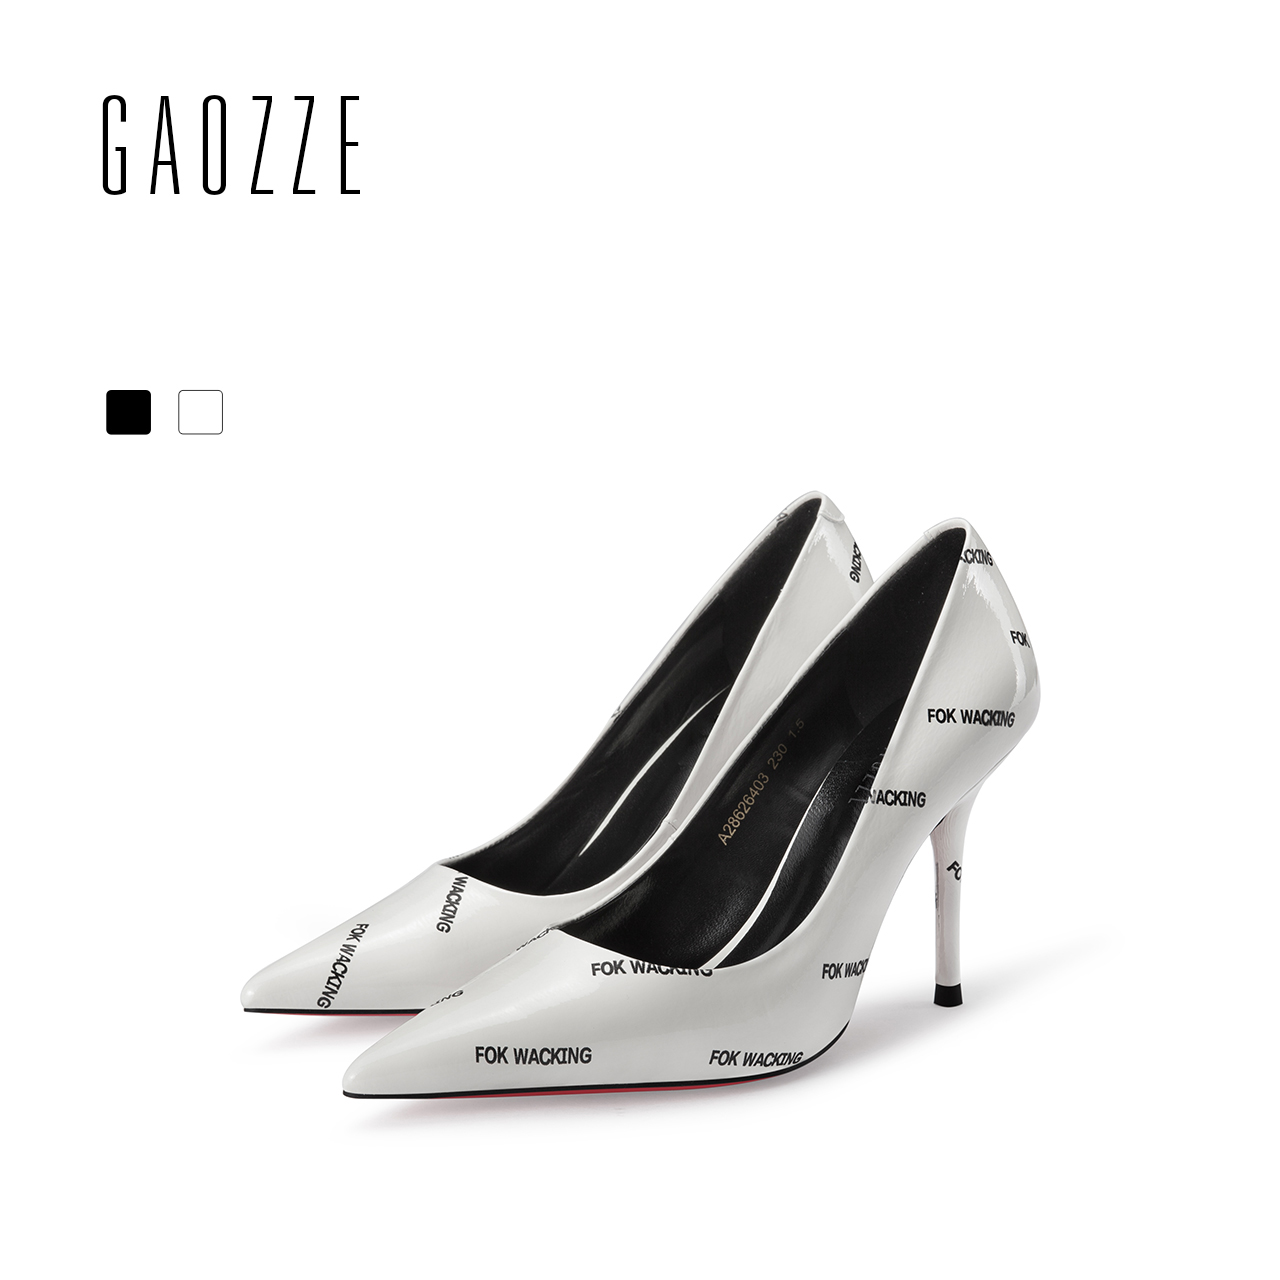 GAOZZE Fashion Women Sexy High Heel Shoes Street Style Letter Printing Social Party Pointed Toe Shoes Pumps Women Shoes Leather gaozze fashion polka dot mesh women sexy stiletto high heel shoes pointed toe party shoes pumps women heels pumps 2018 spring